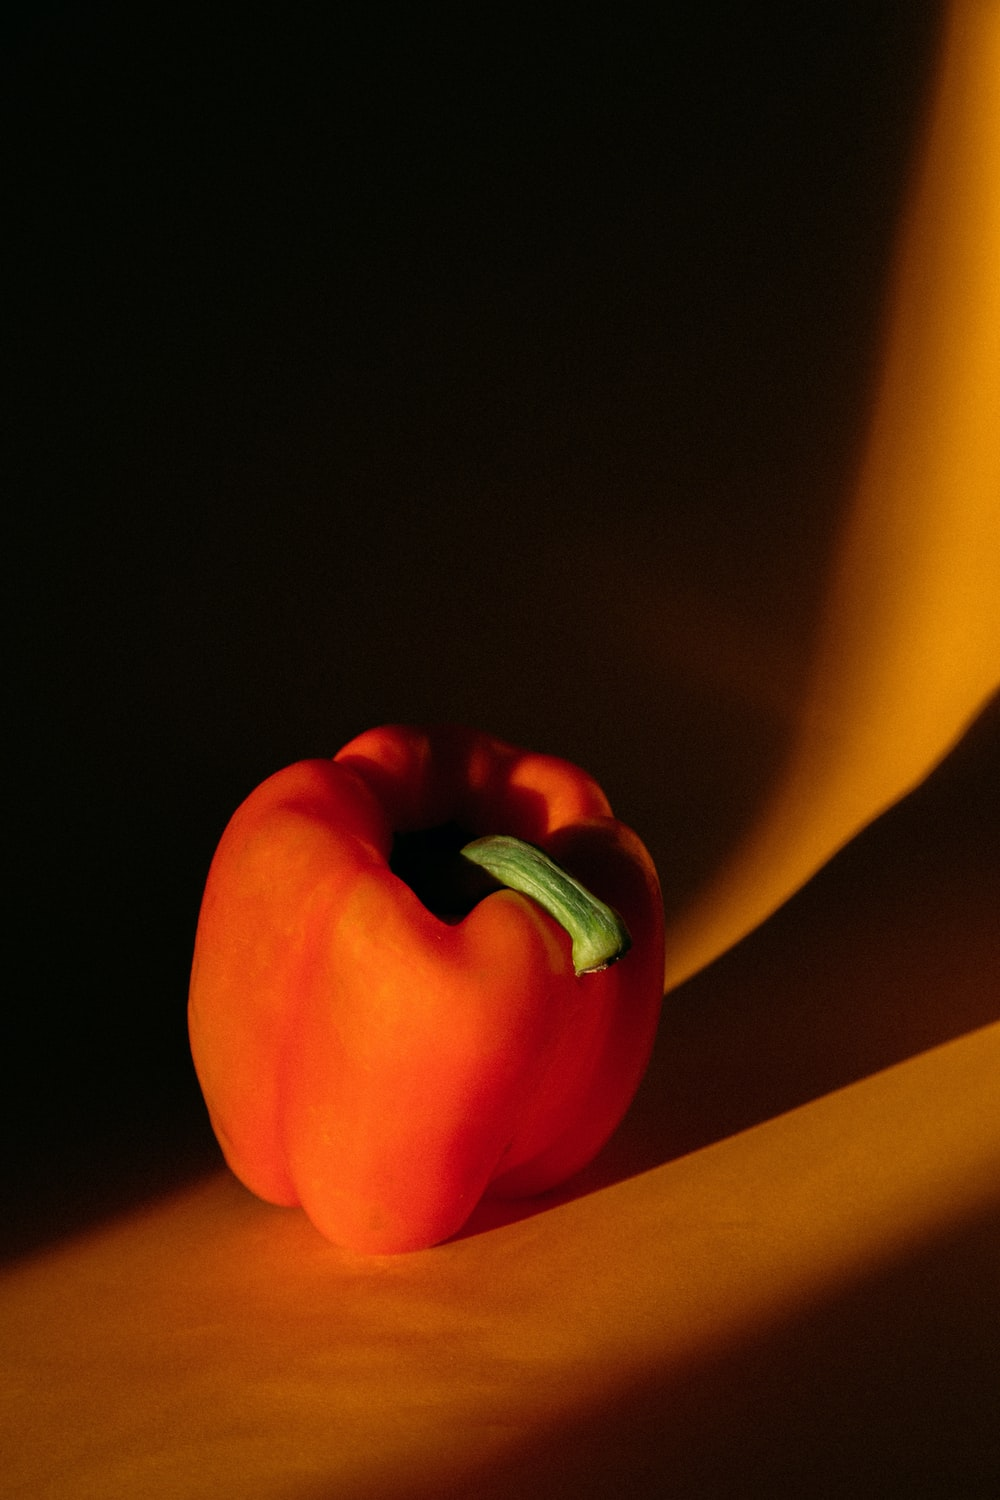 red bell pepper on yellow surface